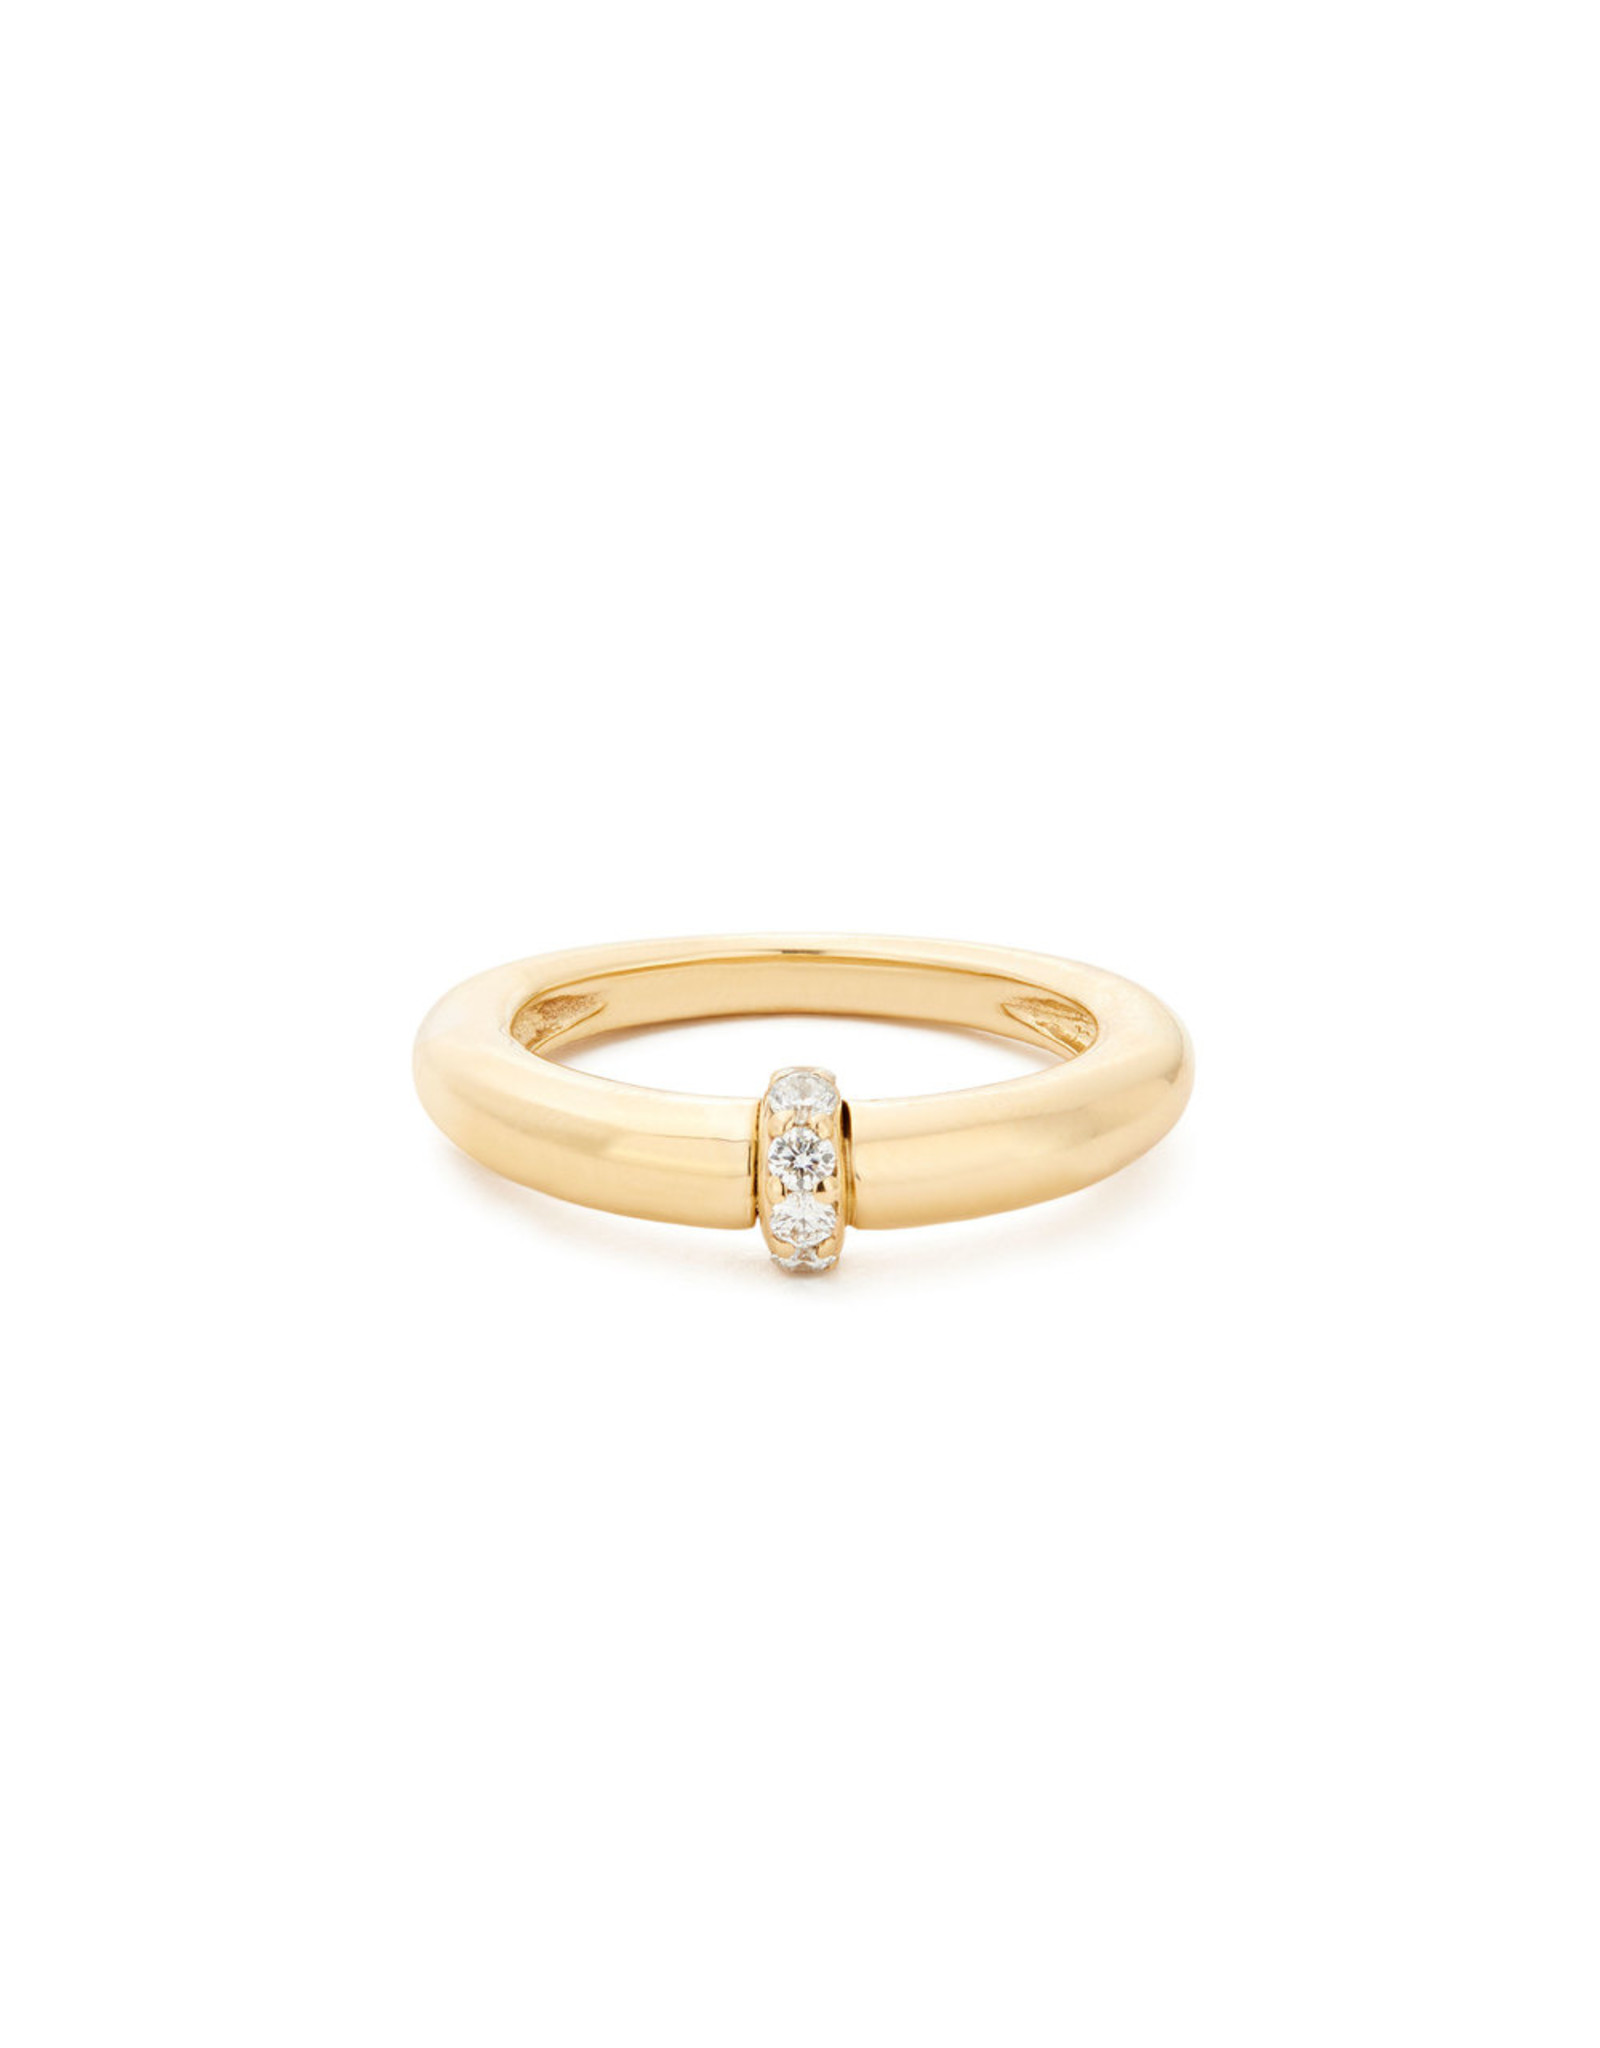 Sophie Ratner Single Diamond Domed Ring (Color: Yellow Gold / Pave, Size: 7)